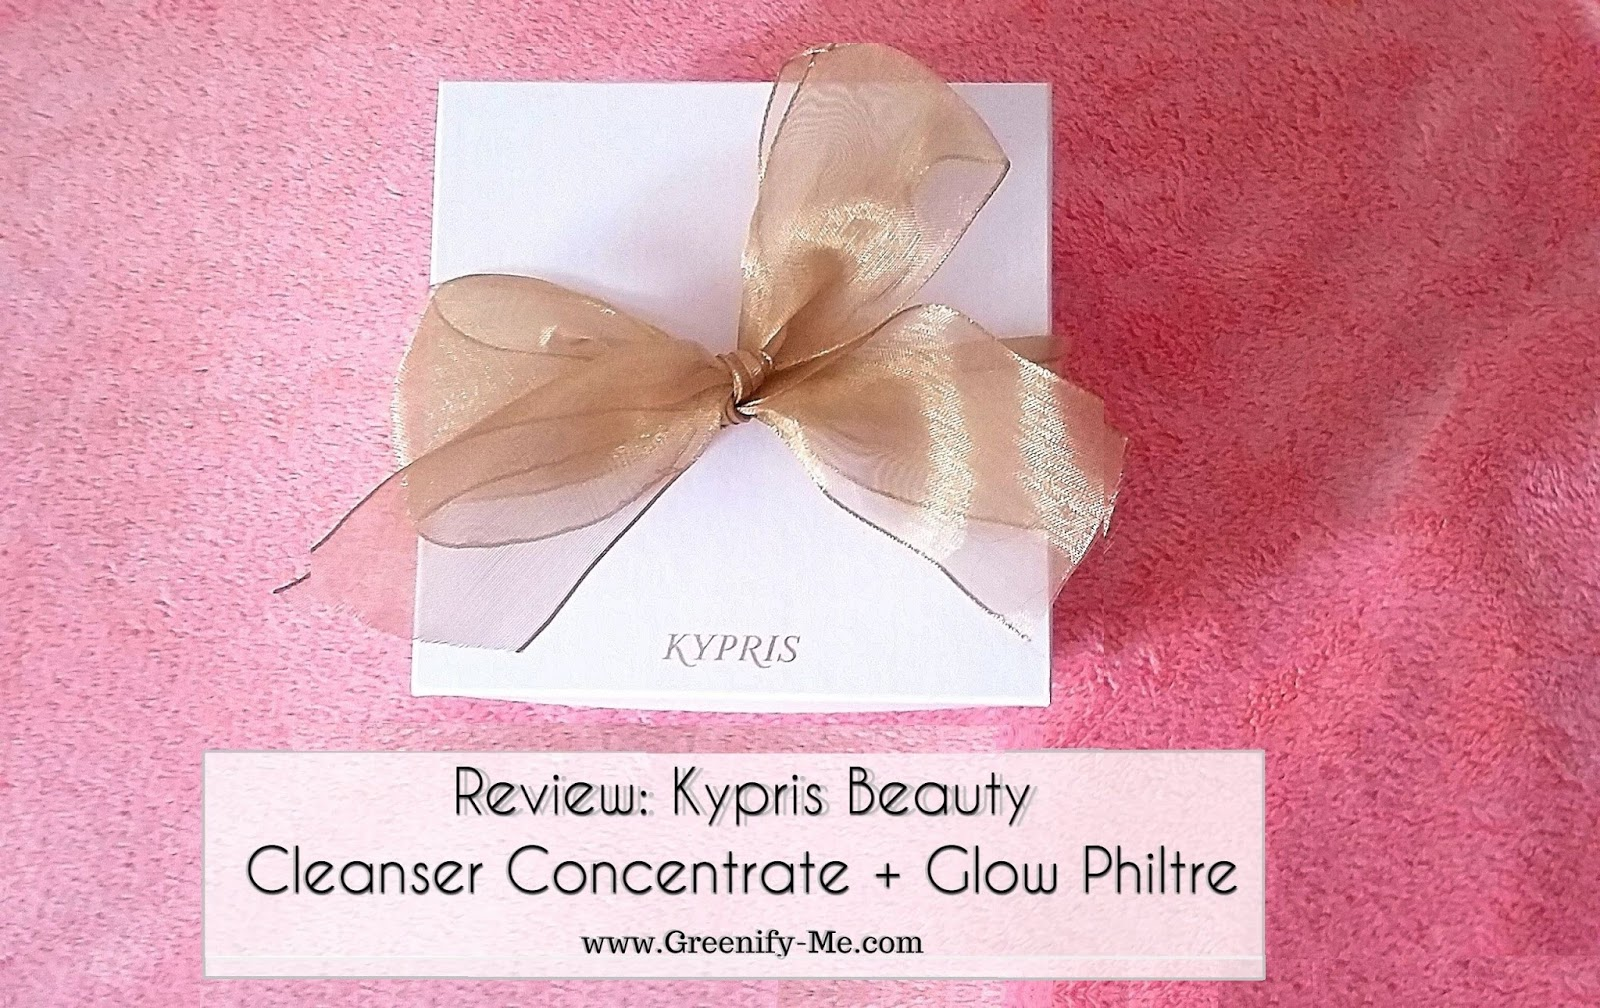 Review: Kypris Beauty - Cleanser Concentrate + Glow Philtre ...